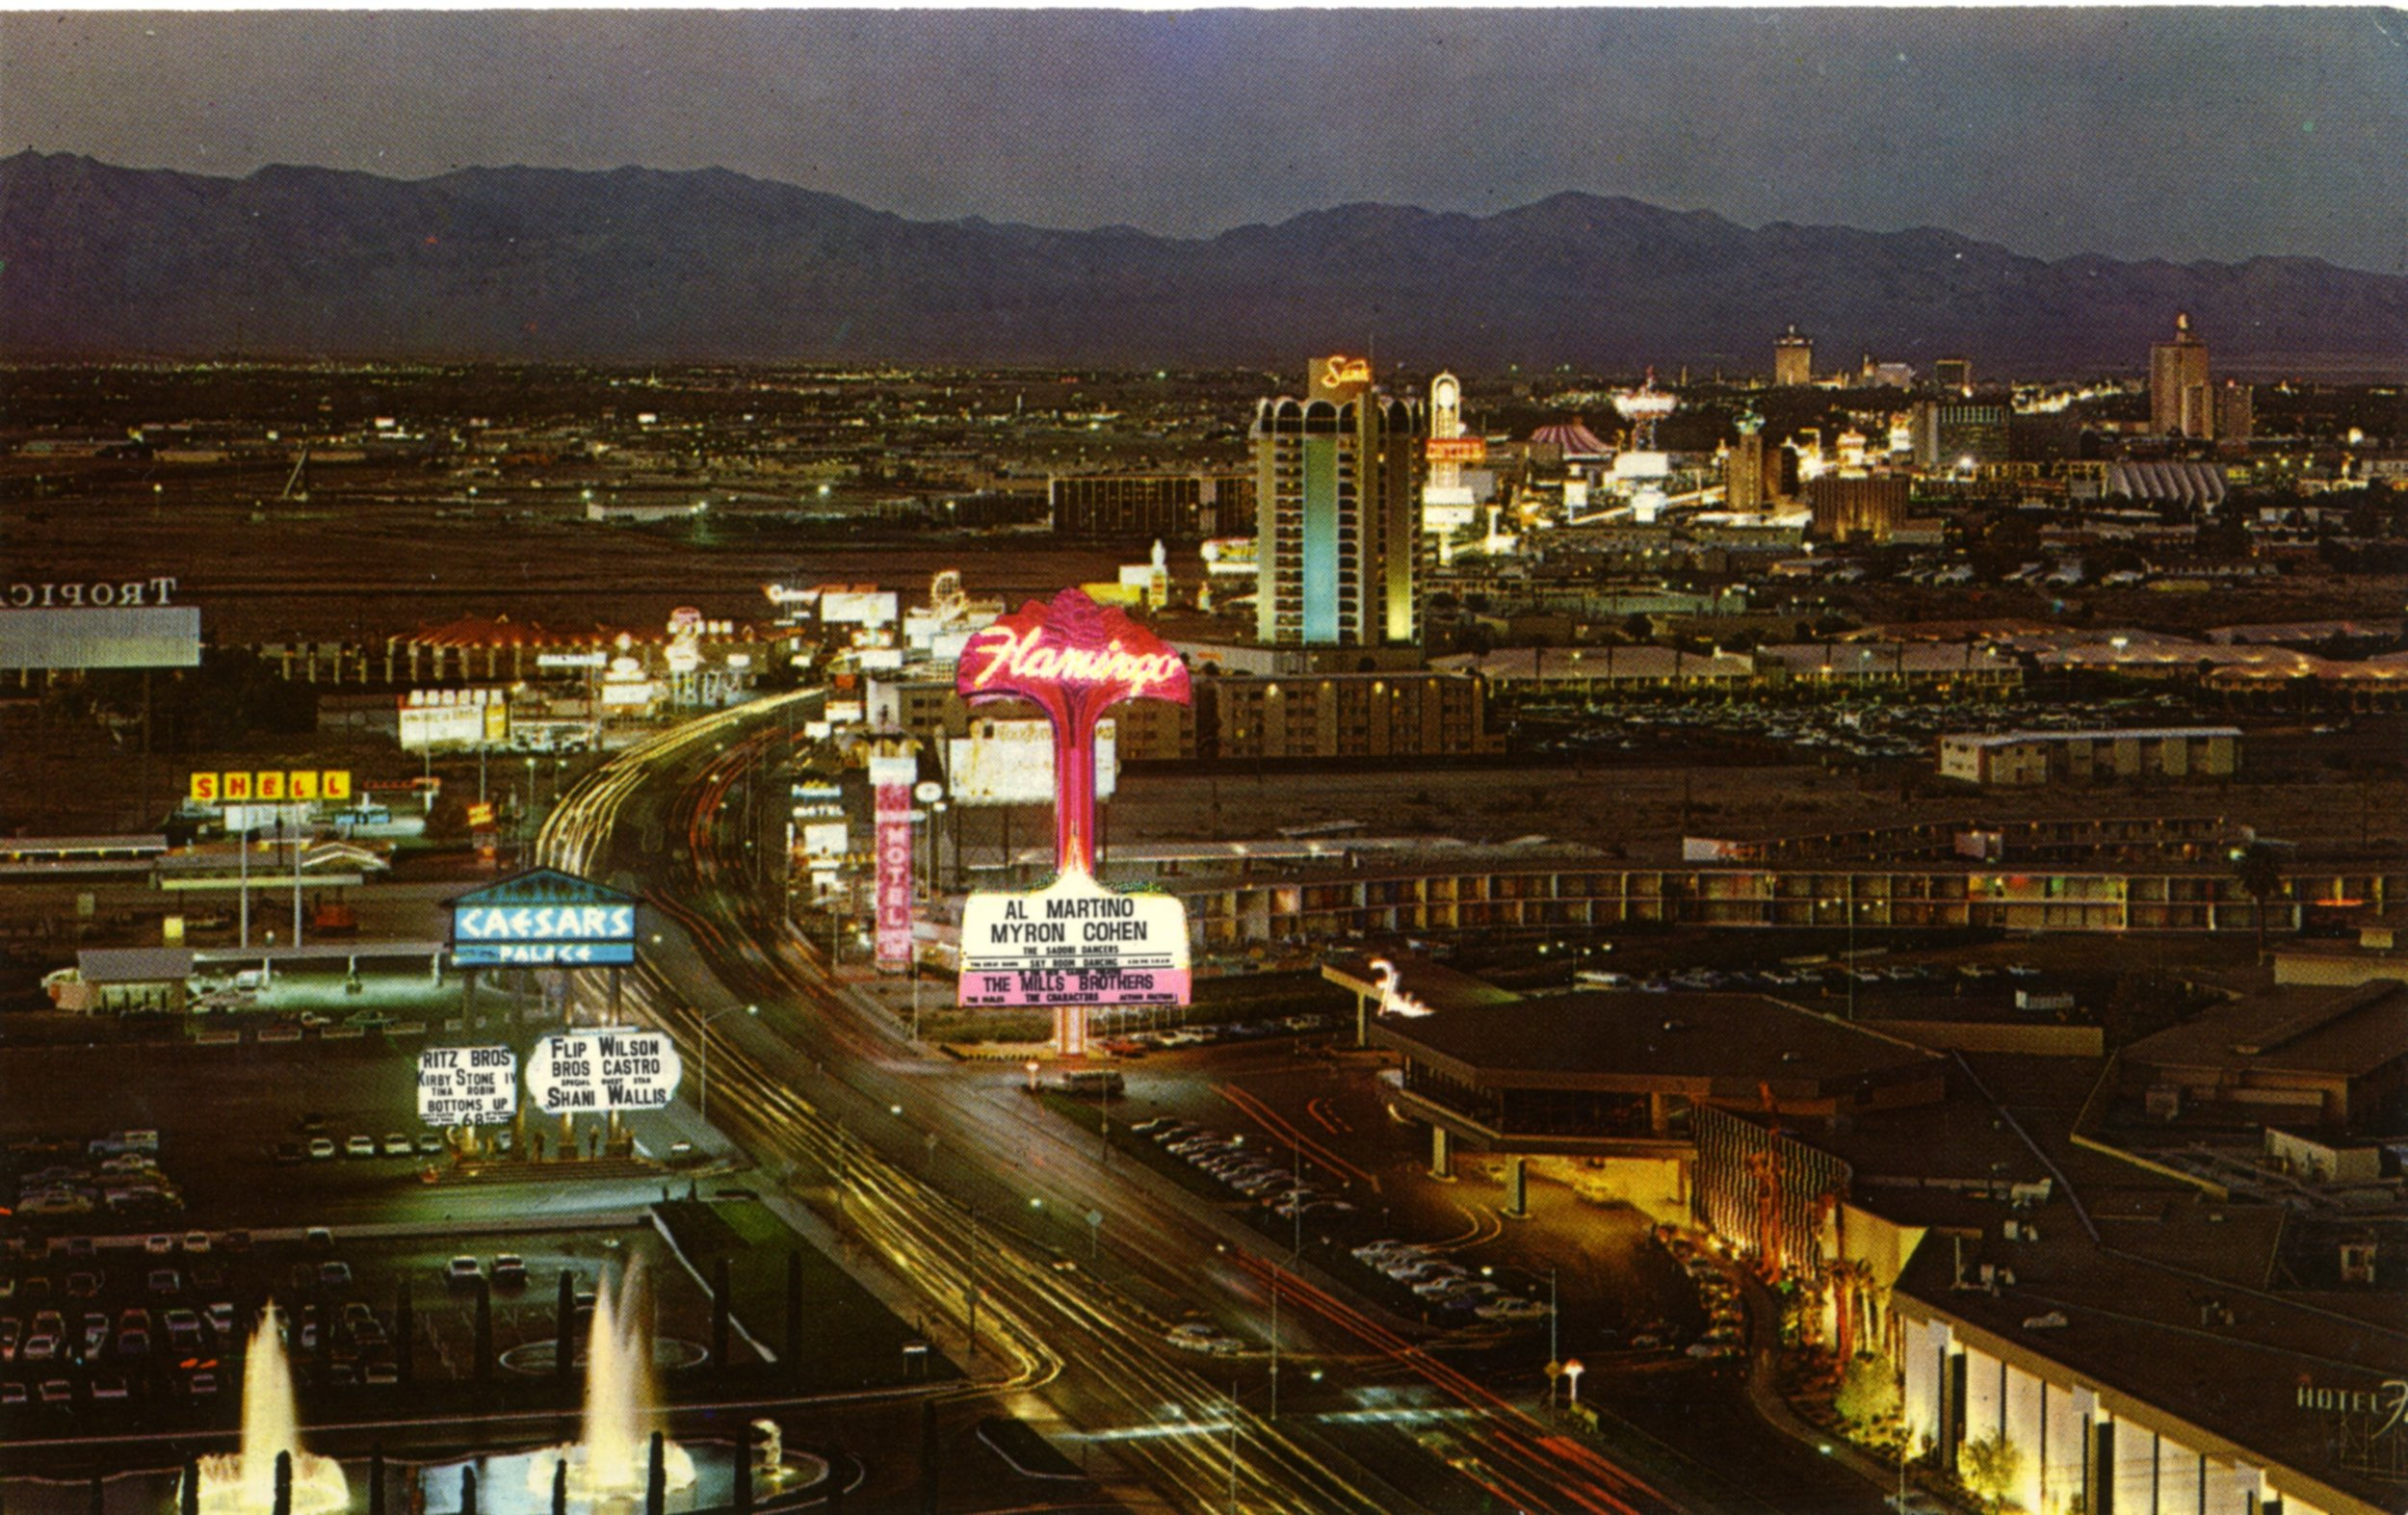 Image courtesy of the Nevada State Museum, Las Vegas